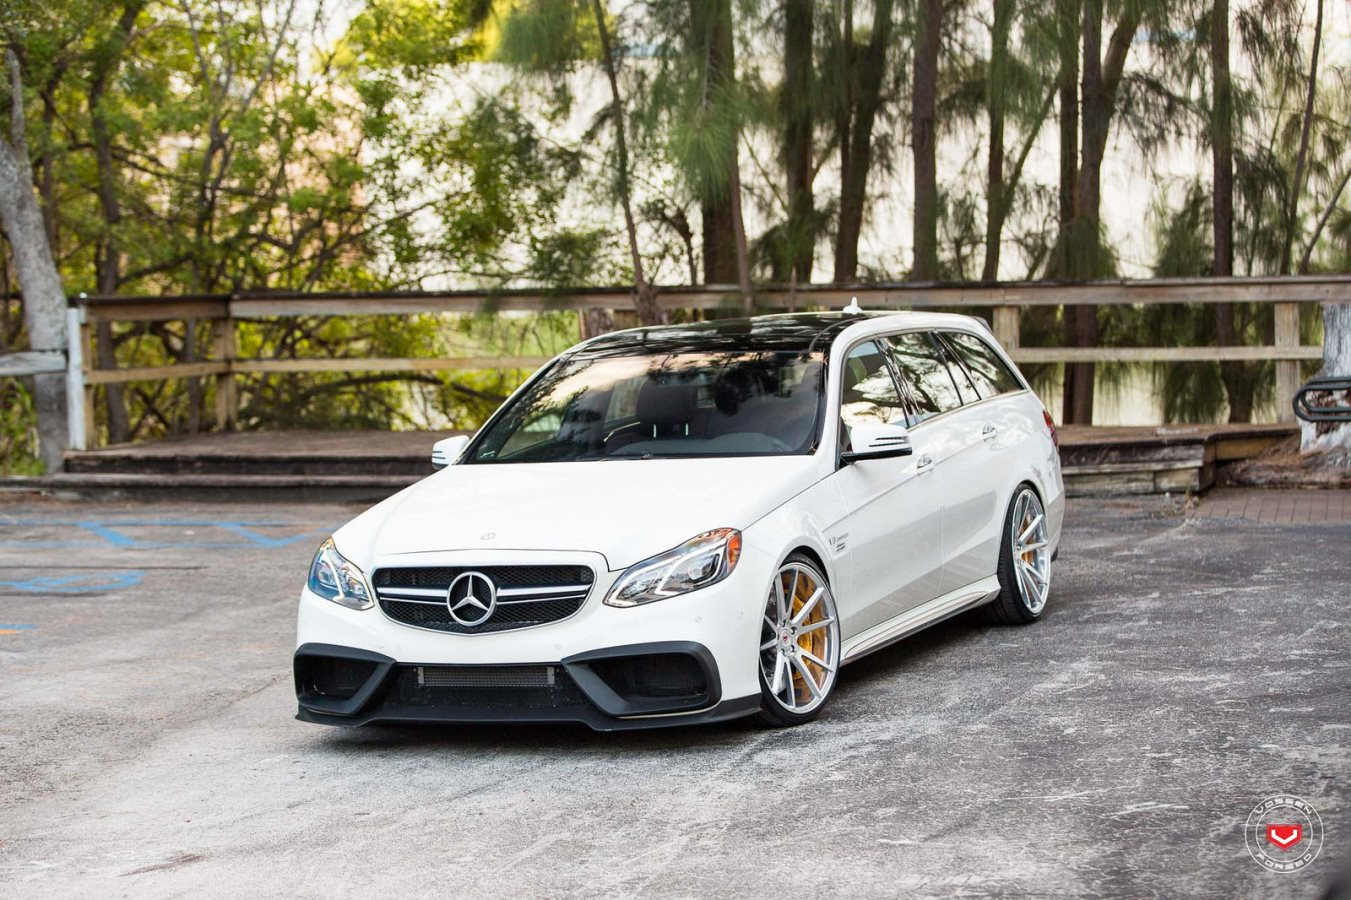 Http www benztuning com 2016 04 mercedes benz s212 e63 amg on vps 301 html